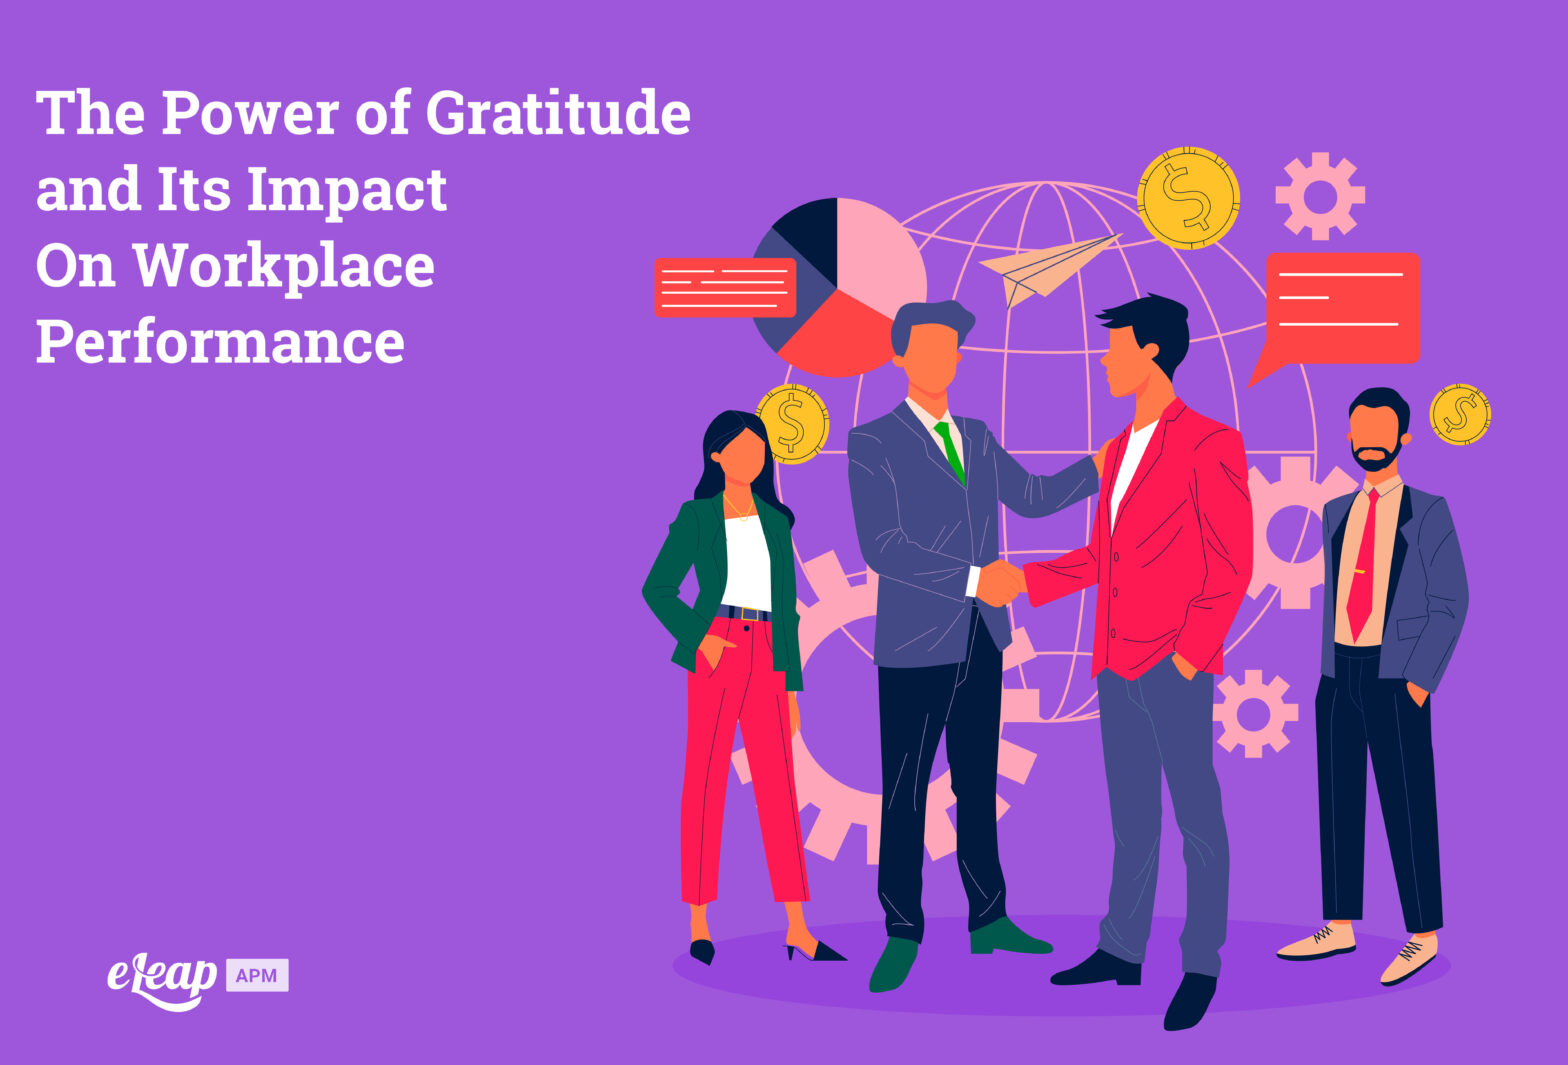 The Power of Gratitude and Its Impact On Workplace Performance